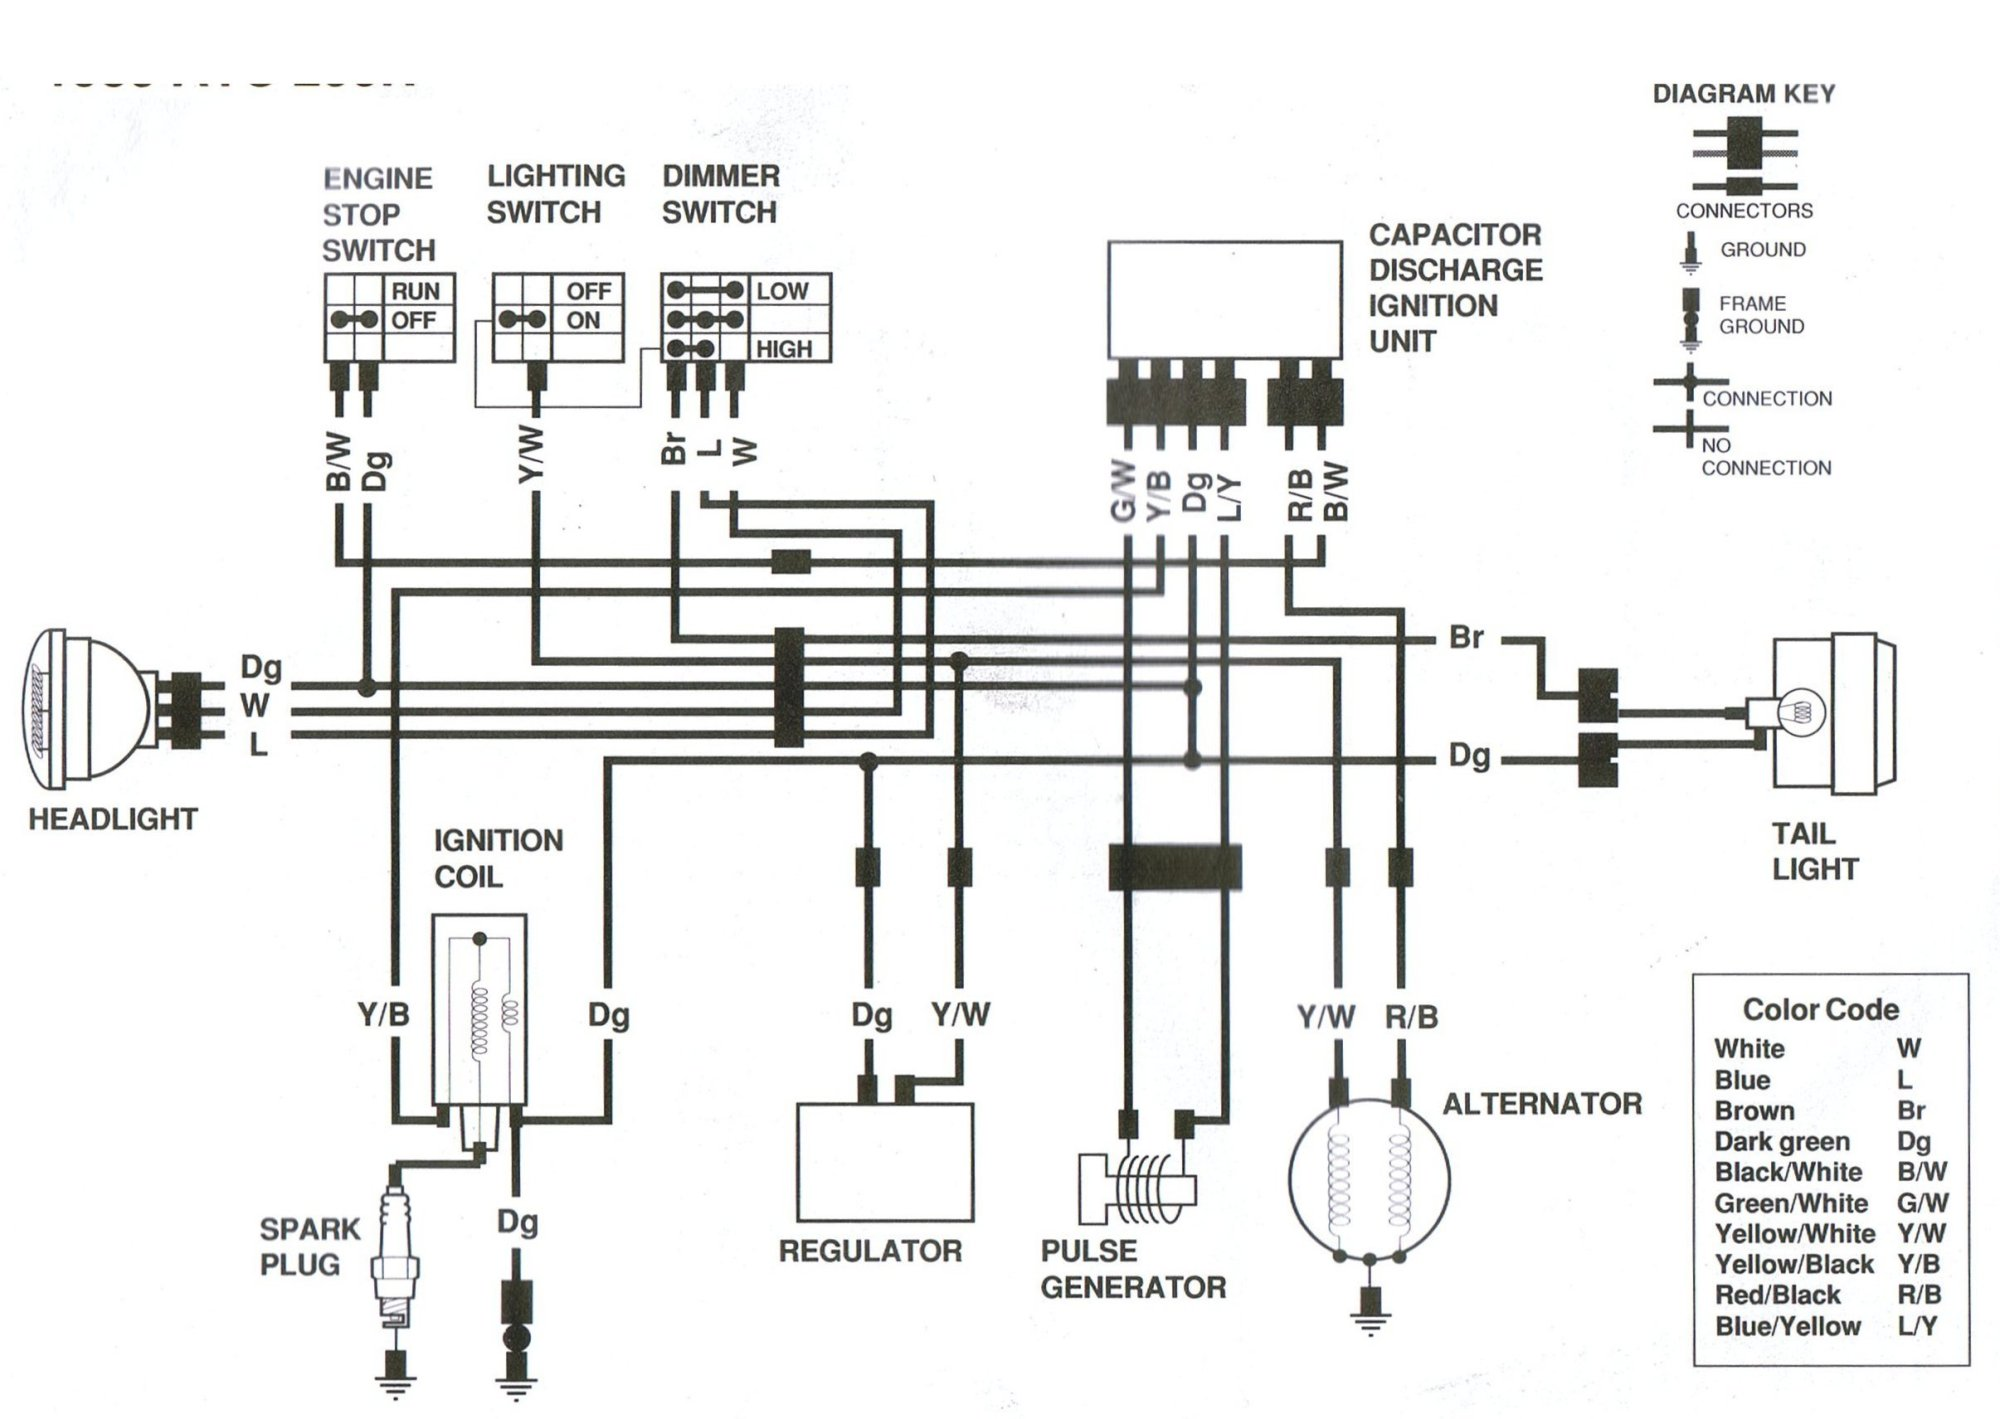 hight resolution of 2002 yamaha viper wiring diagram simple wiring diagram rh 40 mara cujas de yamaha srx 700